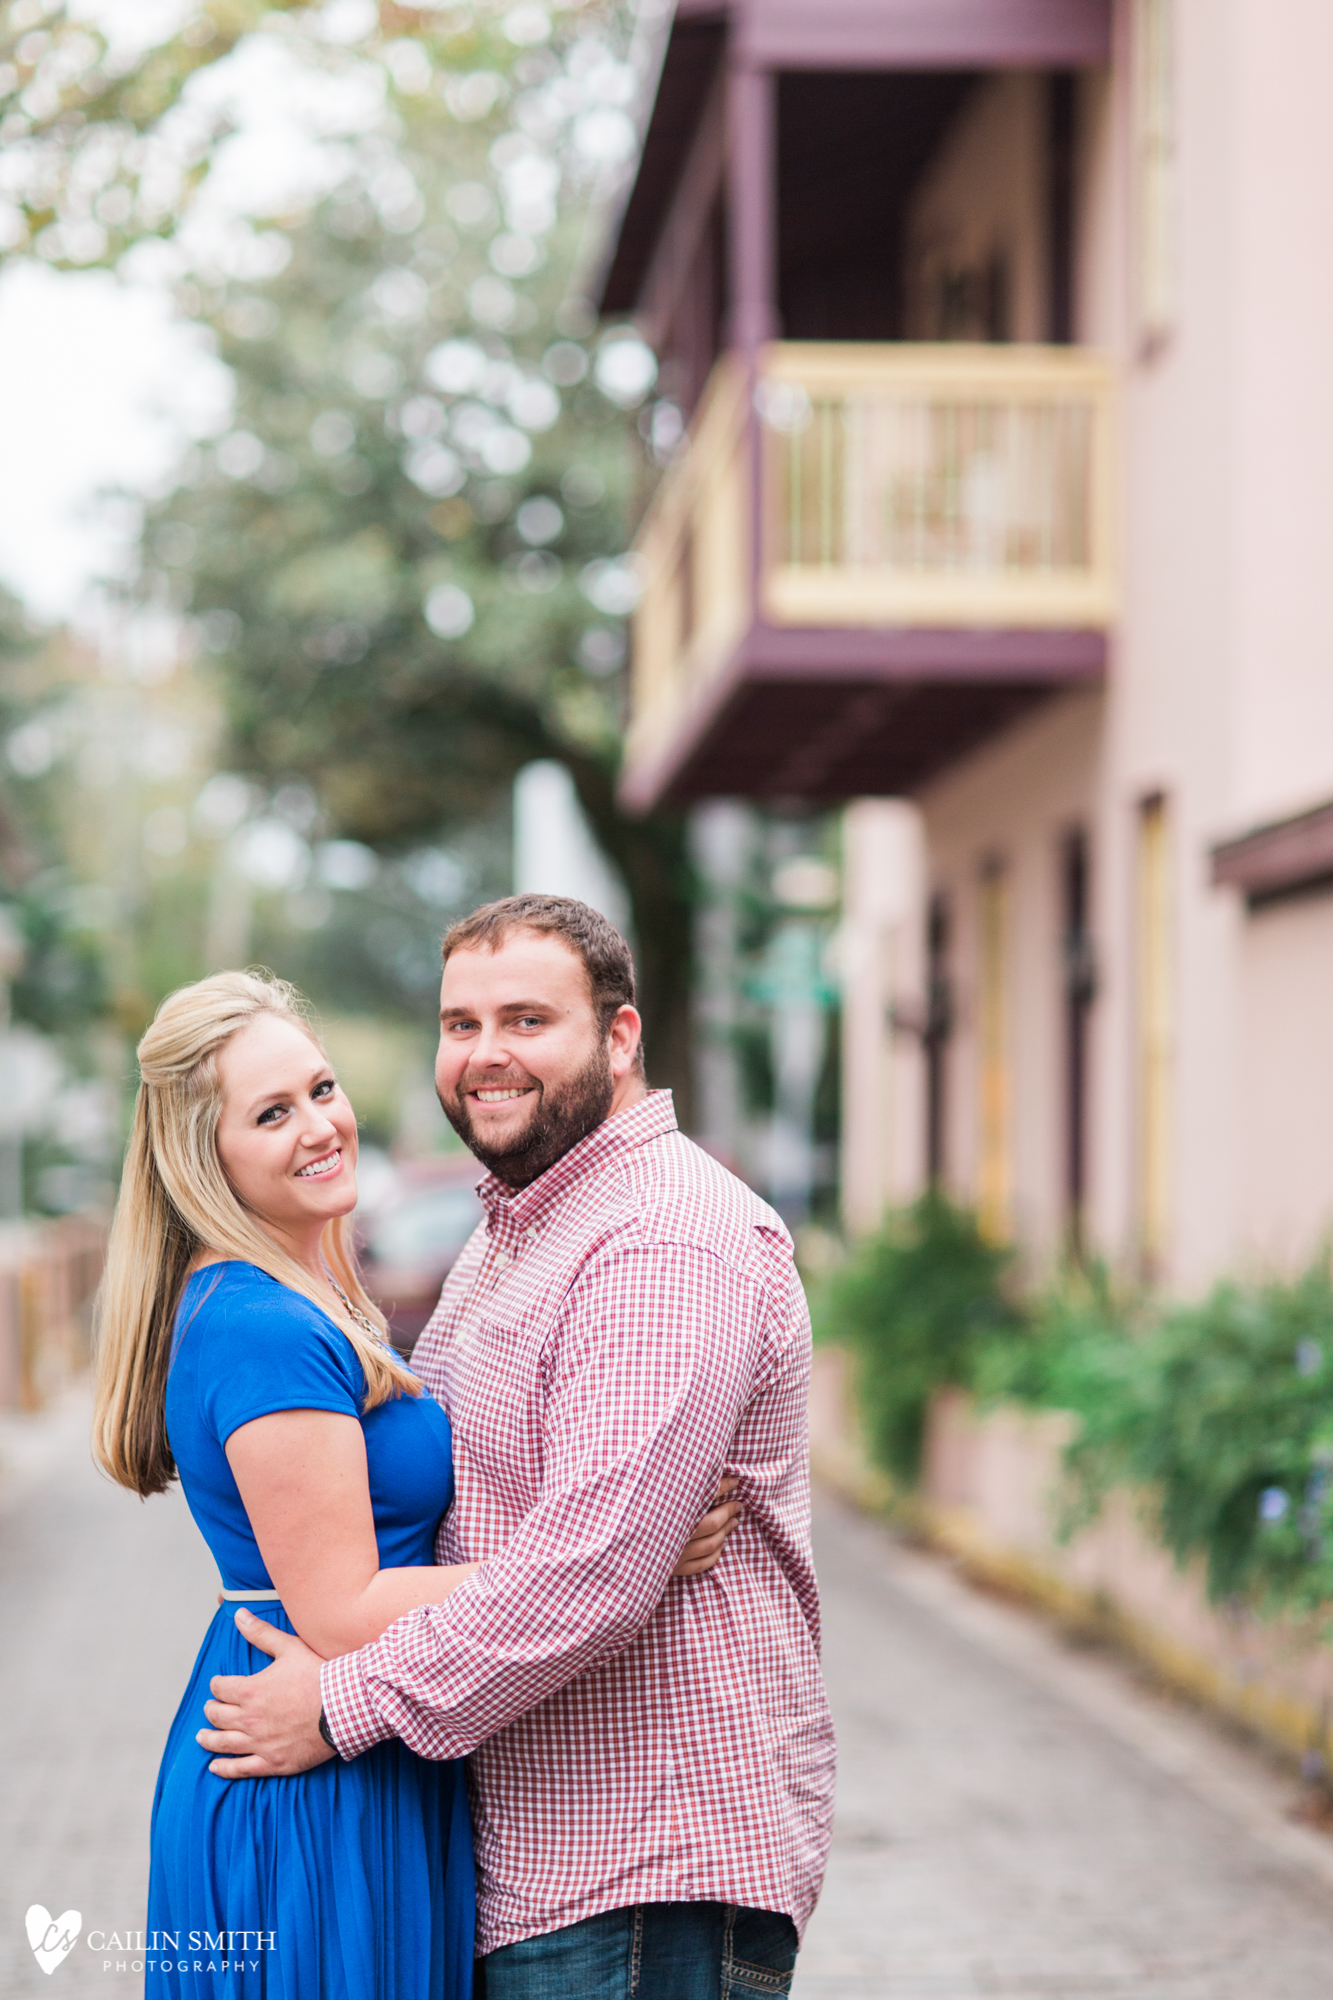 Shari_Brent_St_Augustine_Engagement_Photography_012.jpg